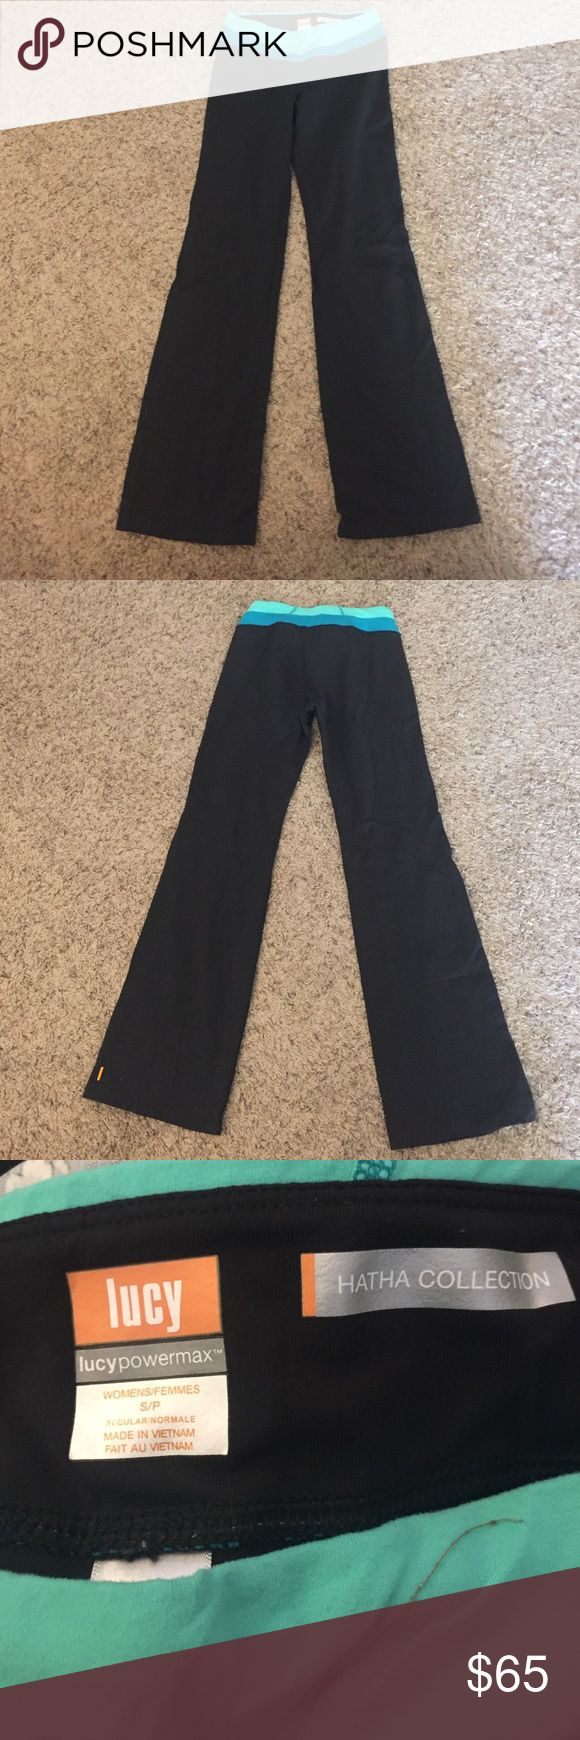 Lucy athletic wear Lucy athletic wear. Hathaway collection in perfect condition. Cute blue waistband accent. Make me an offer! 😊 Lucy Pants Boot Cut & Flare